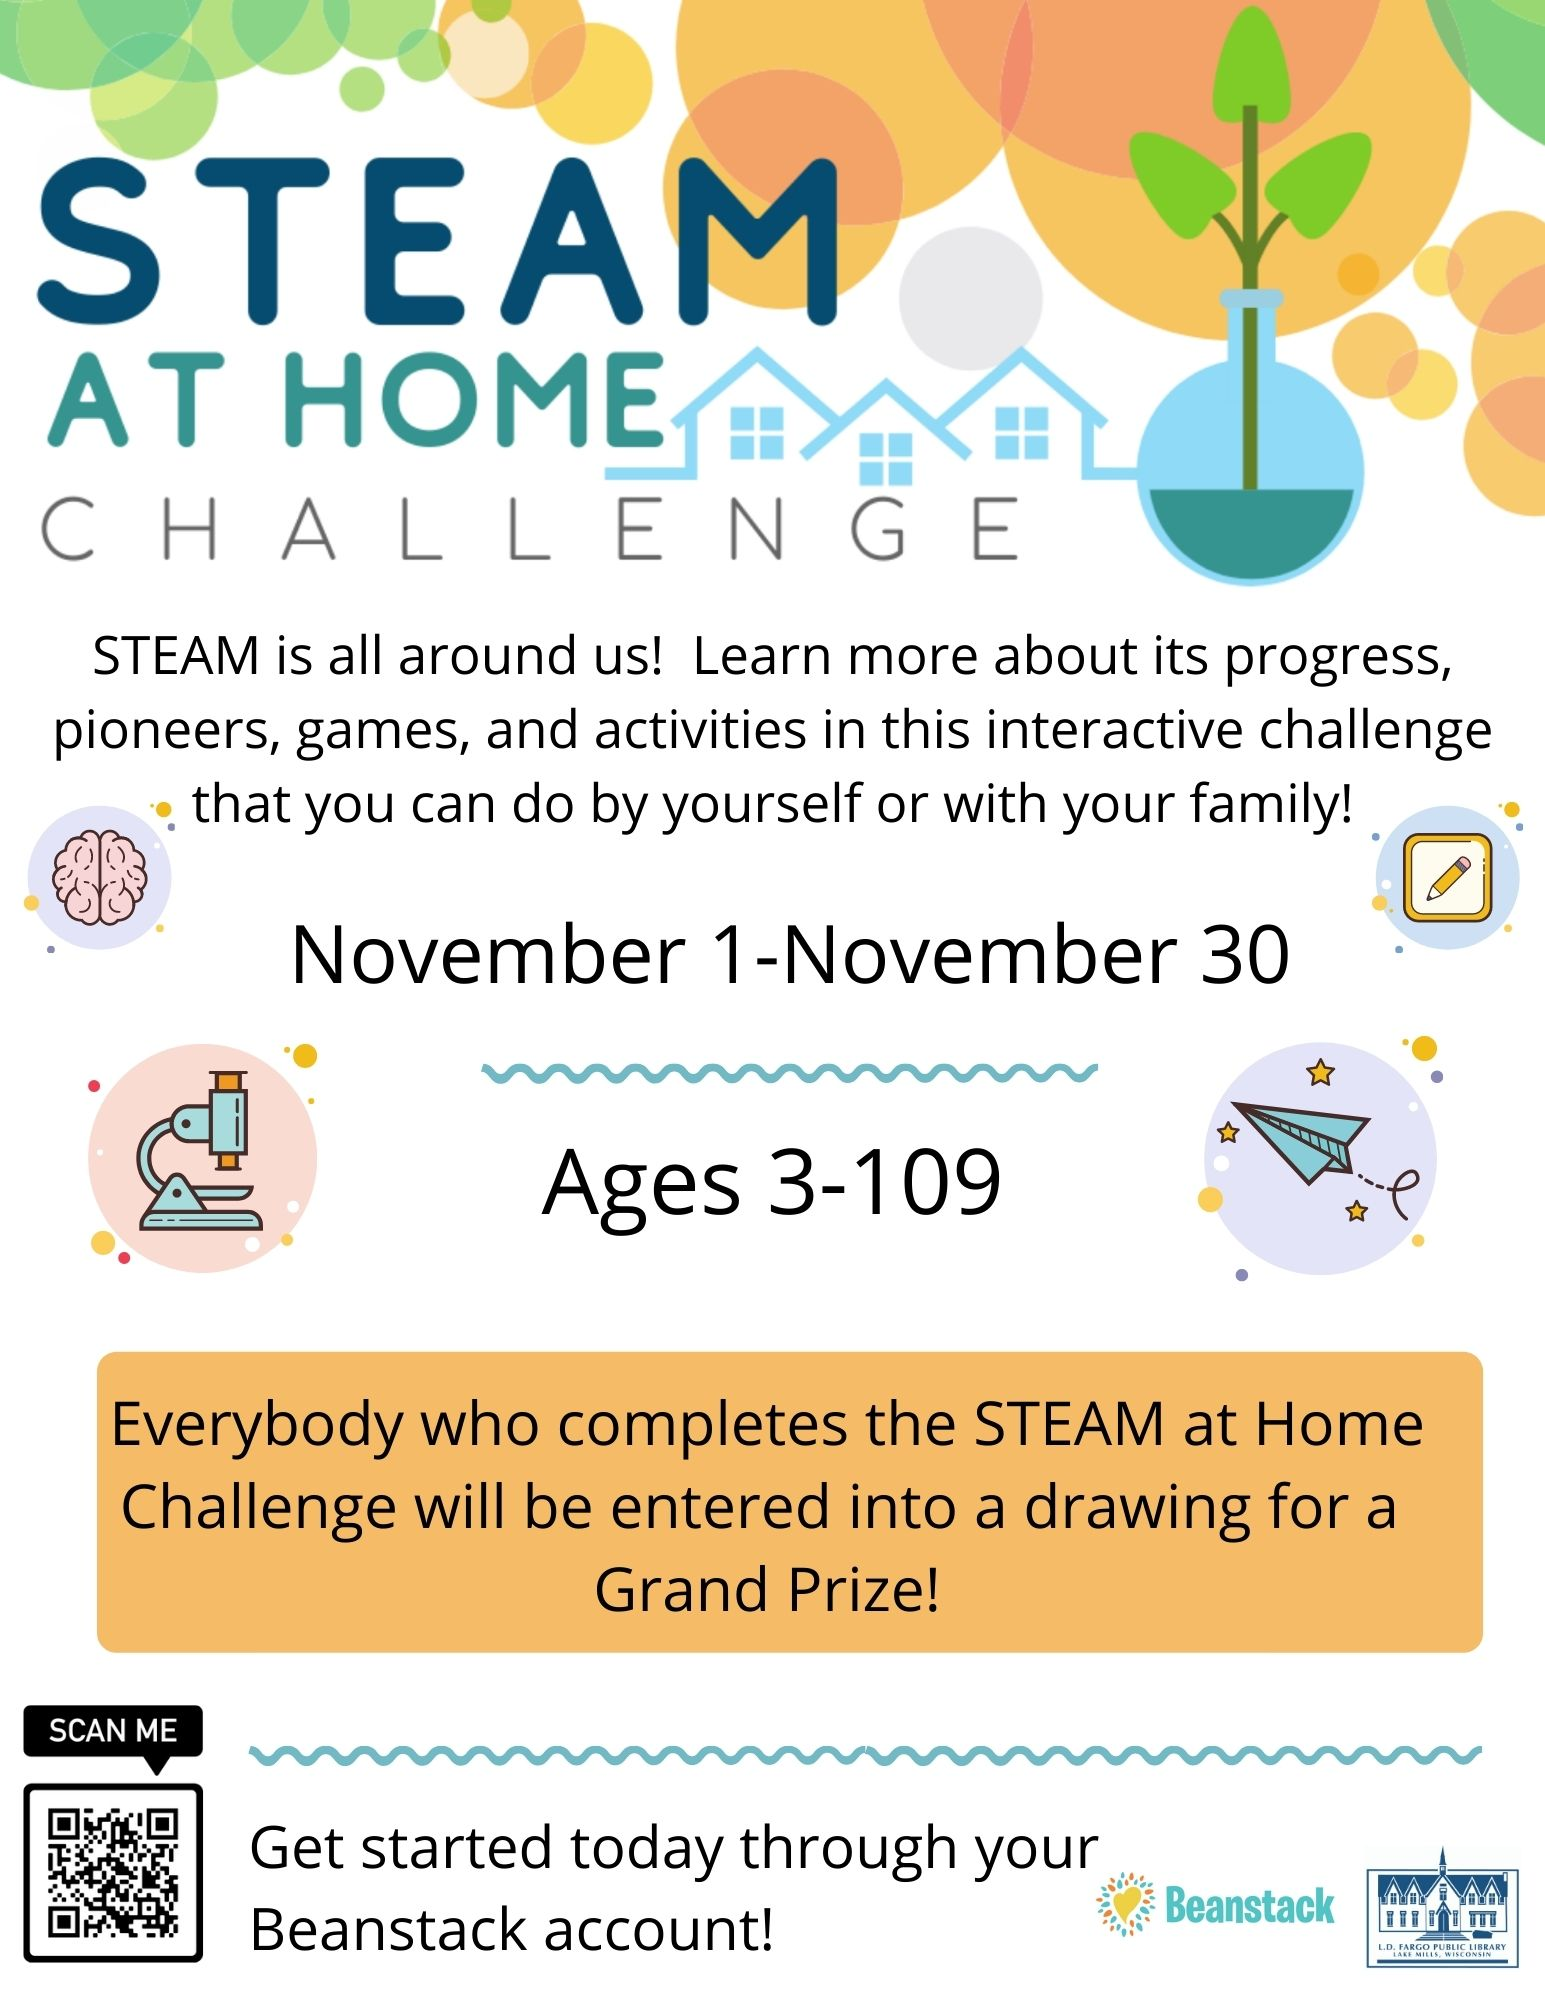 STEAM is all around us! Learn more about its progress, pioneers, games, and activities in this interactive challenge that you can do by yourself or with your family! November 1-November 30. Sign up today on Beanstack! Everybody who completes the STEAM at Home Challenge will be entered into a drawing for a Grand Prize!